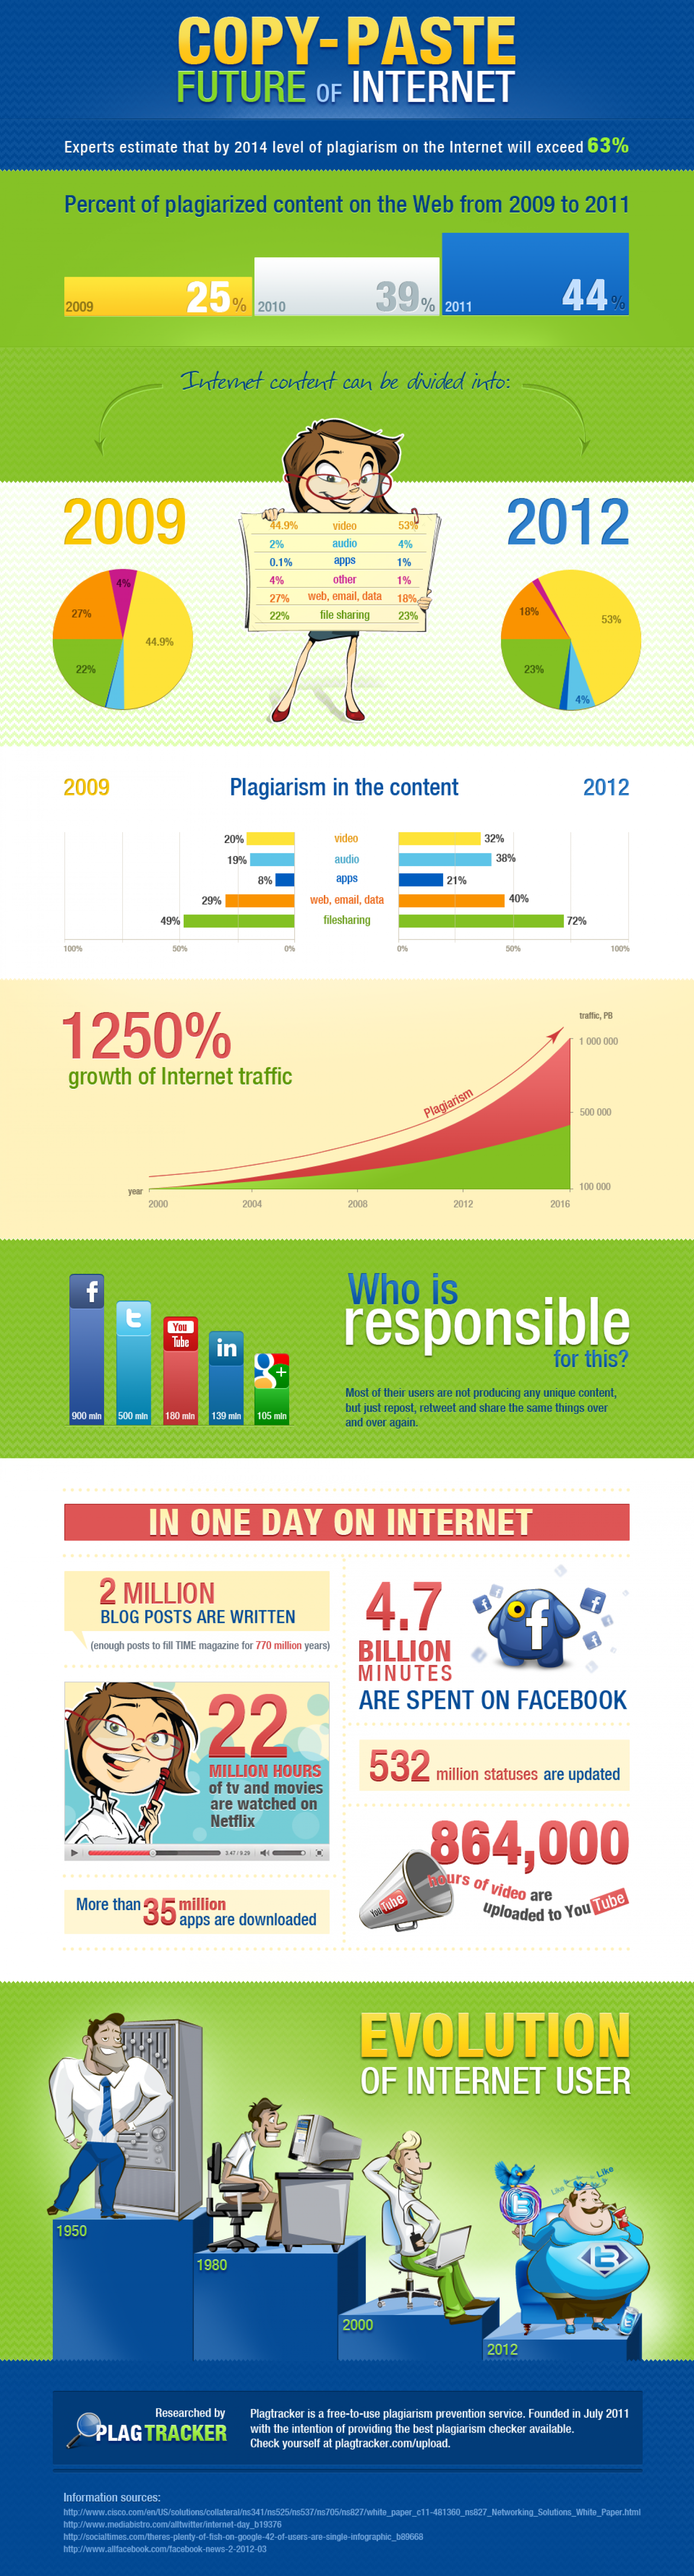 Copy-paste future of internet Infographic